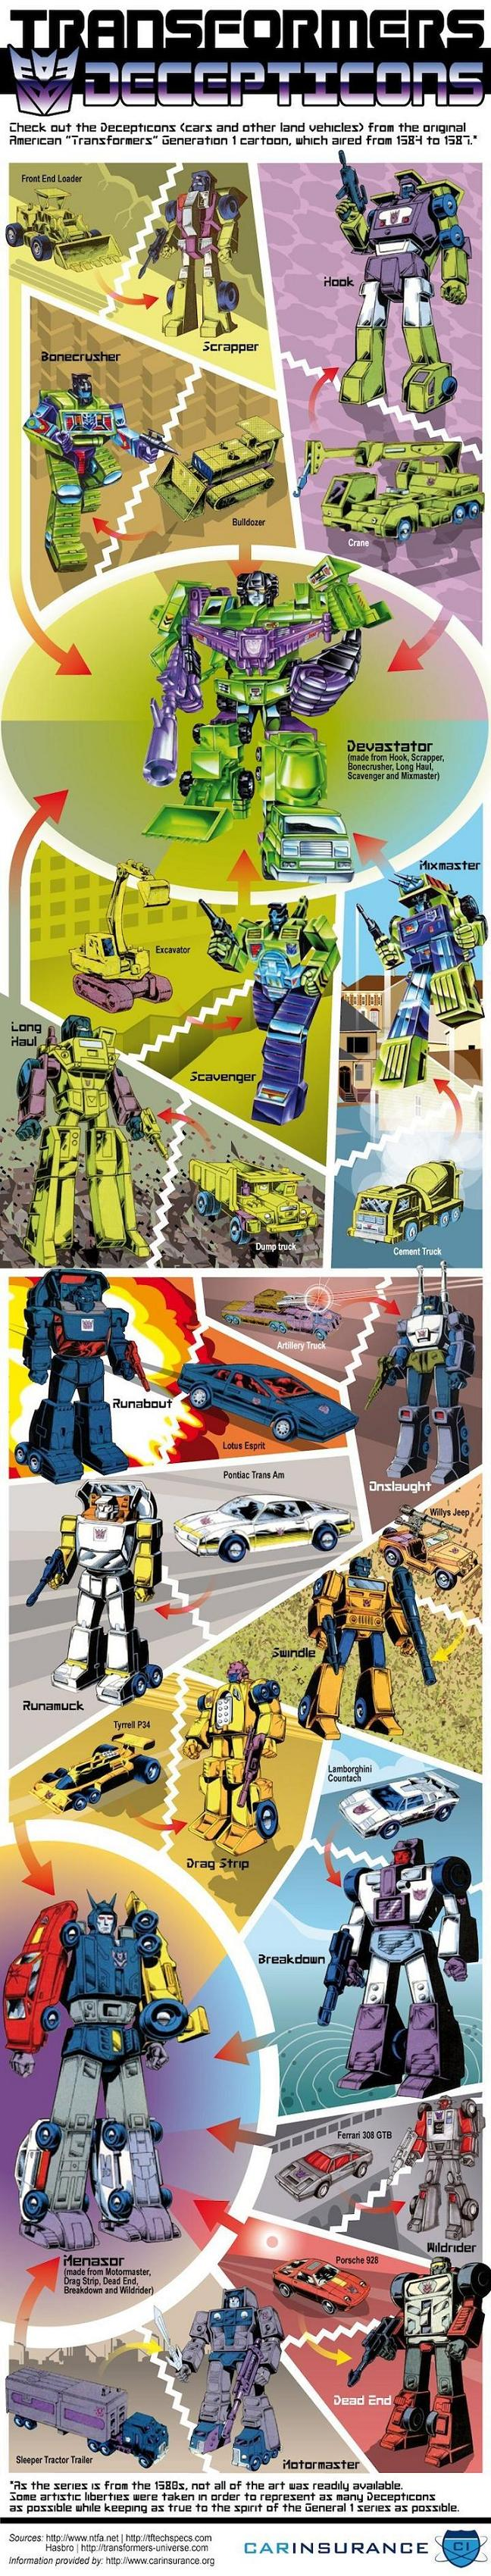 The Cars Behind The Original Transformers Decepticons [Infographic] 1